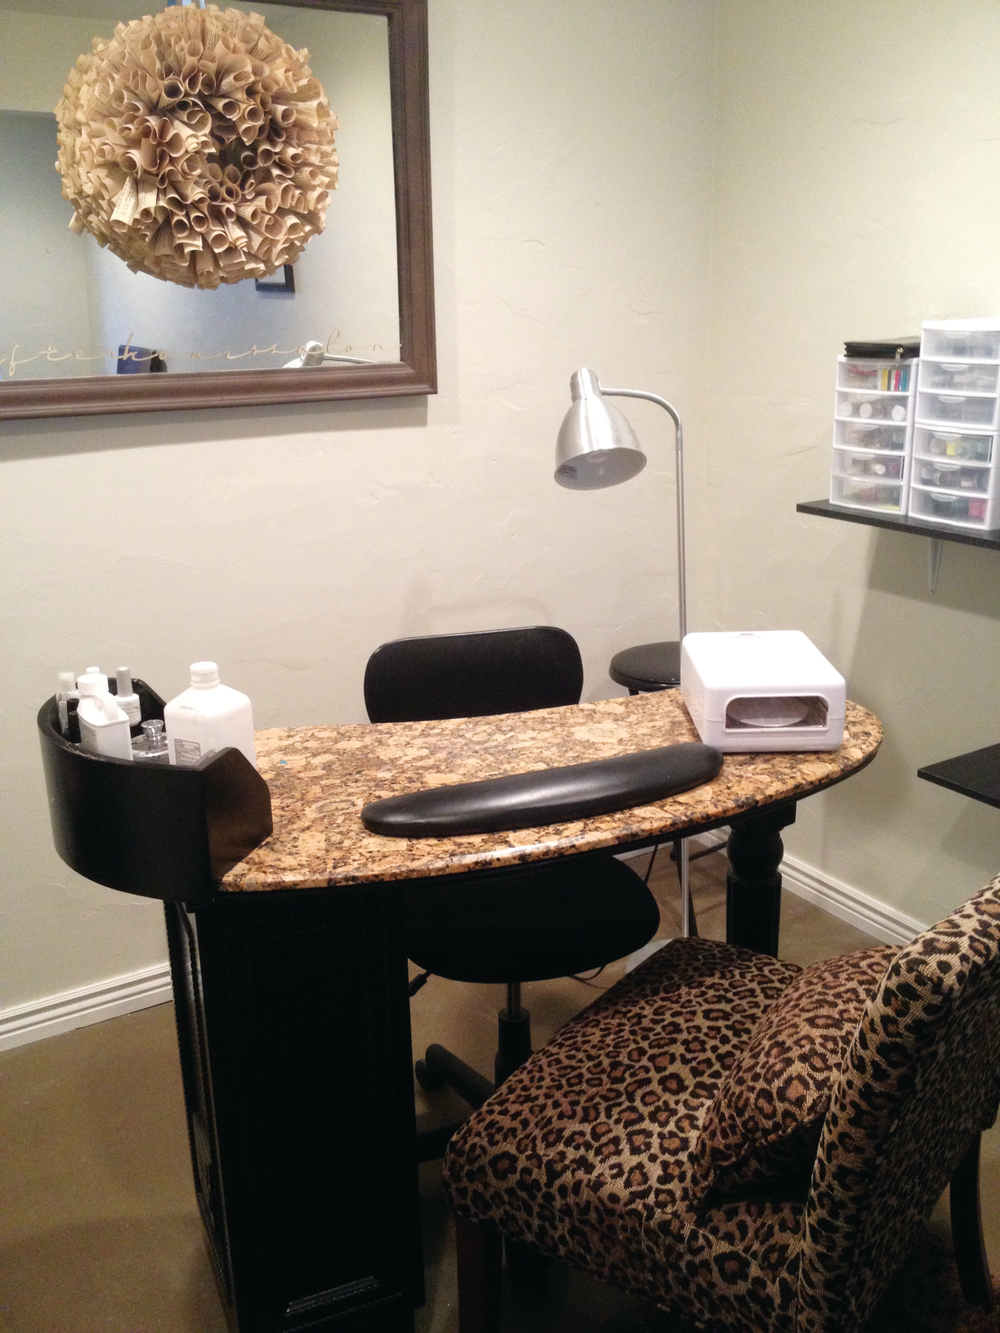 <p><strong>Emily Meyers, After Hours Salon, Eagle Mountain, Utah</strong><br />@afterhourssalon<br />I love my little salon. I get to work from home and set my own hours. My clients love the homey feel; it&rsquo;s like a little sanctuary!</p>